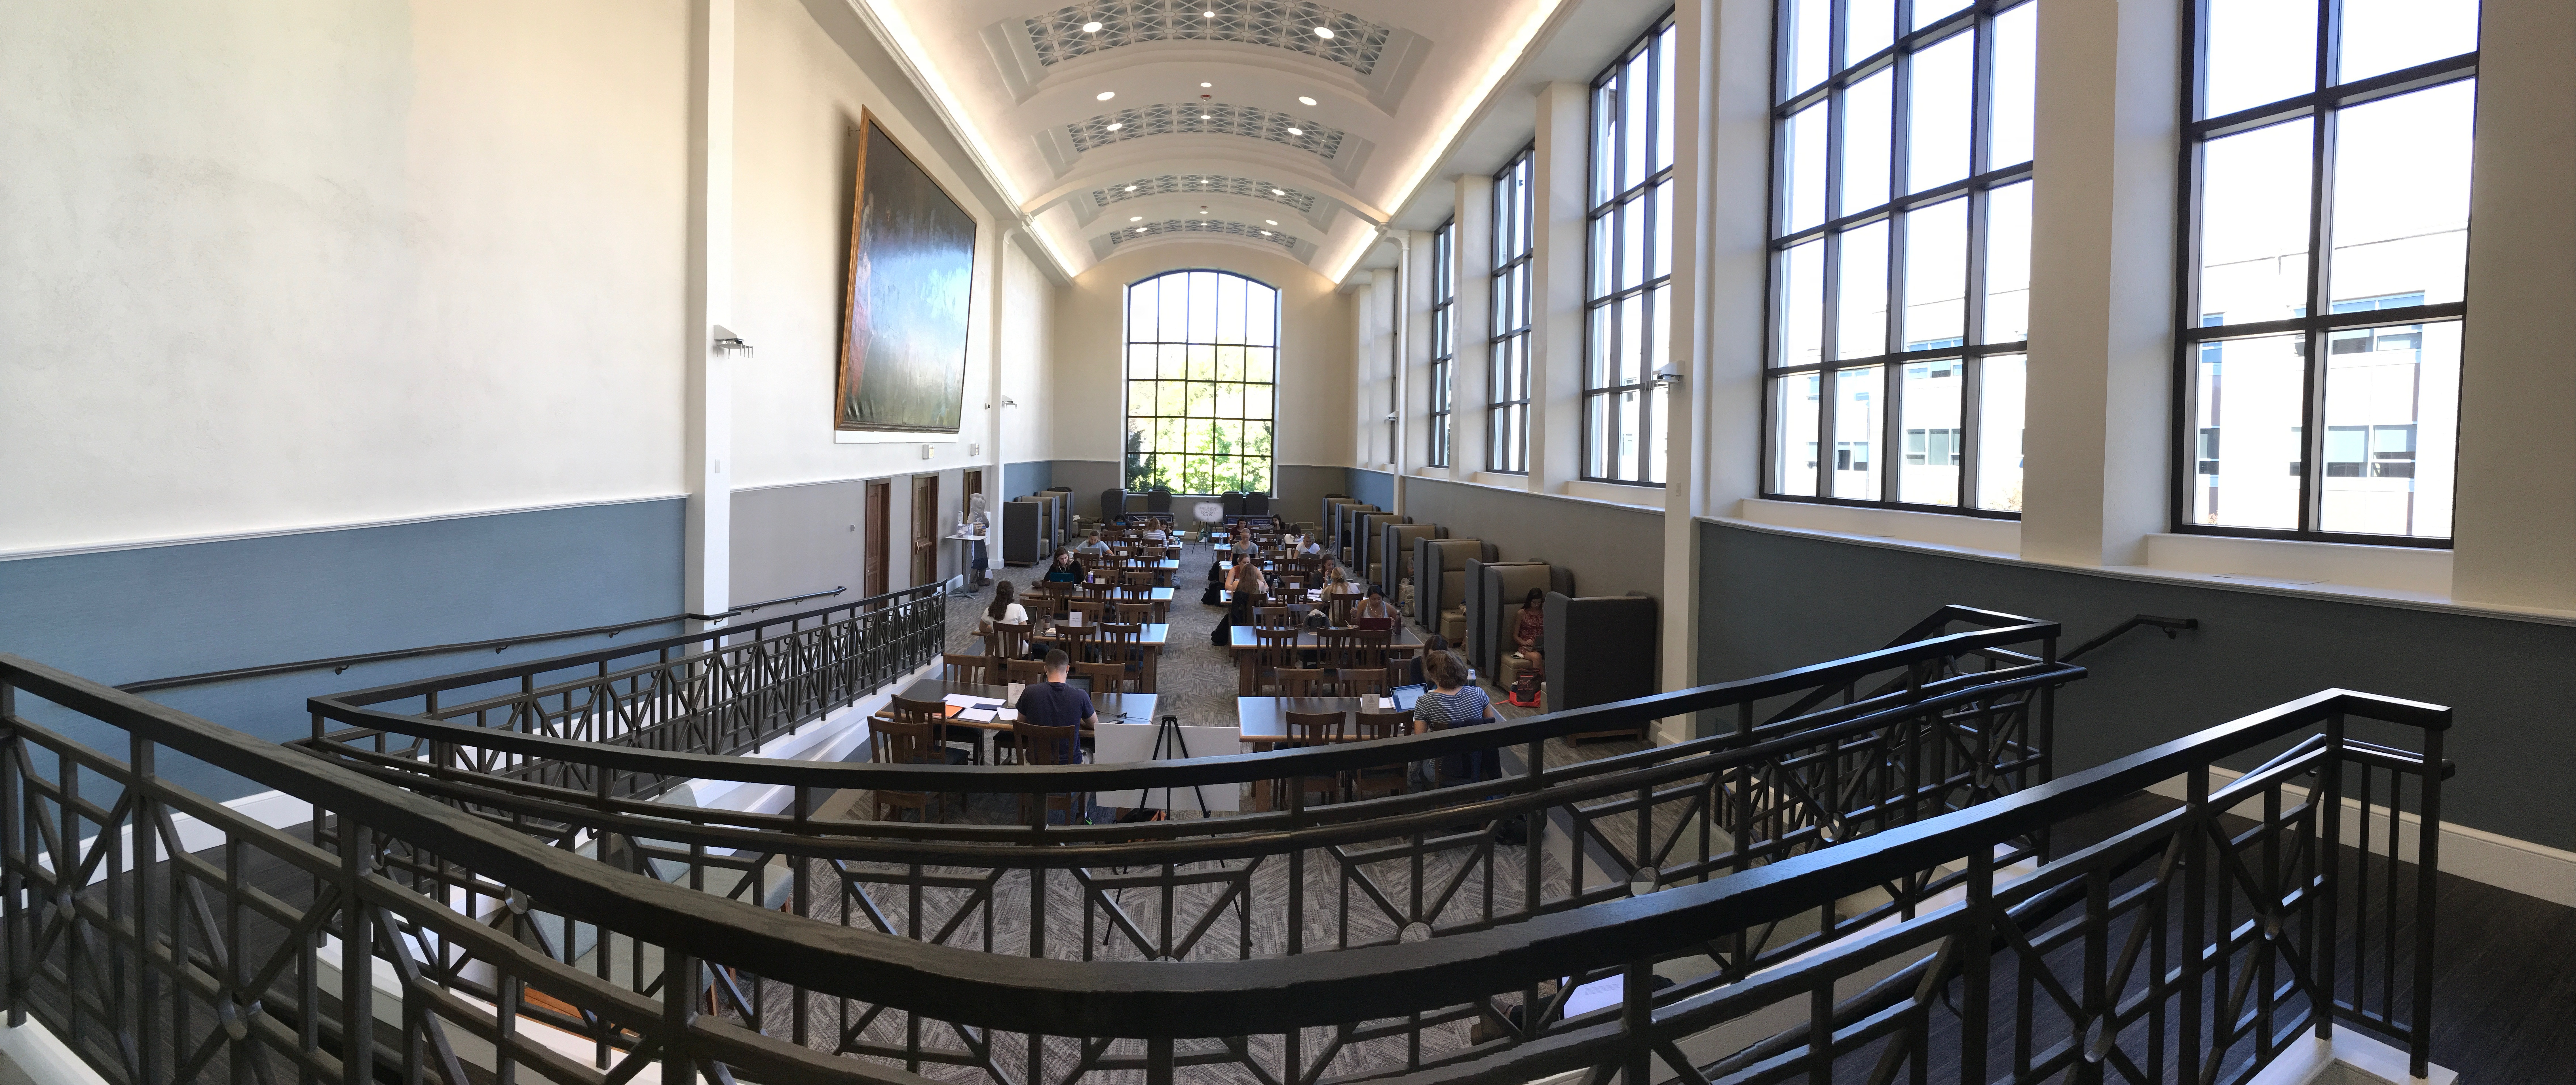 A Panoramic View of the Dugan Polk Family Reading Room